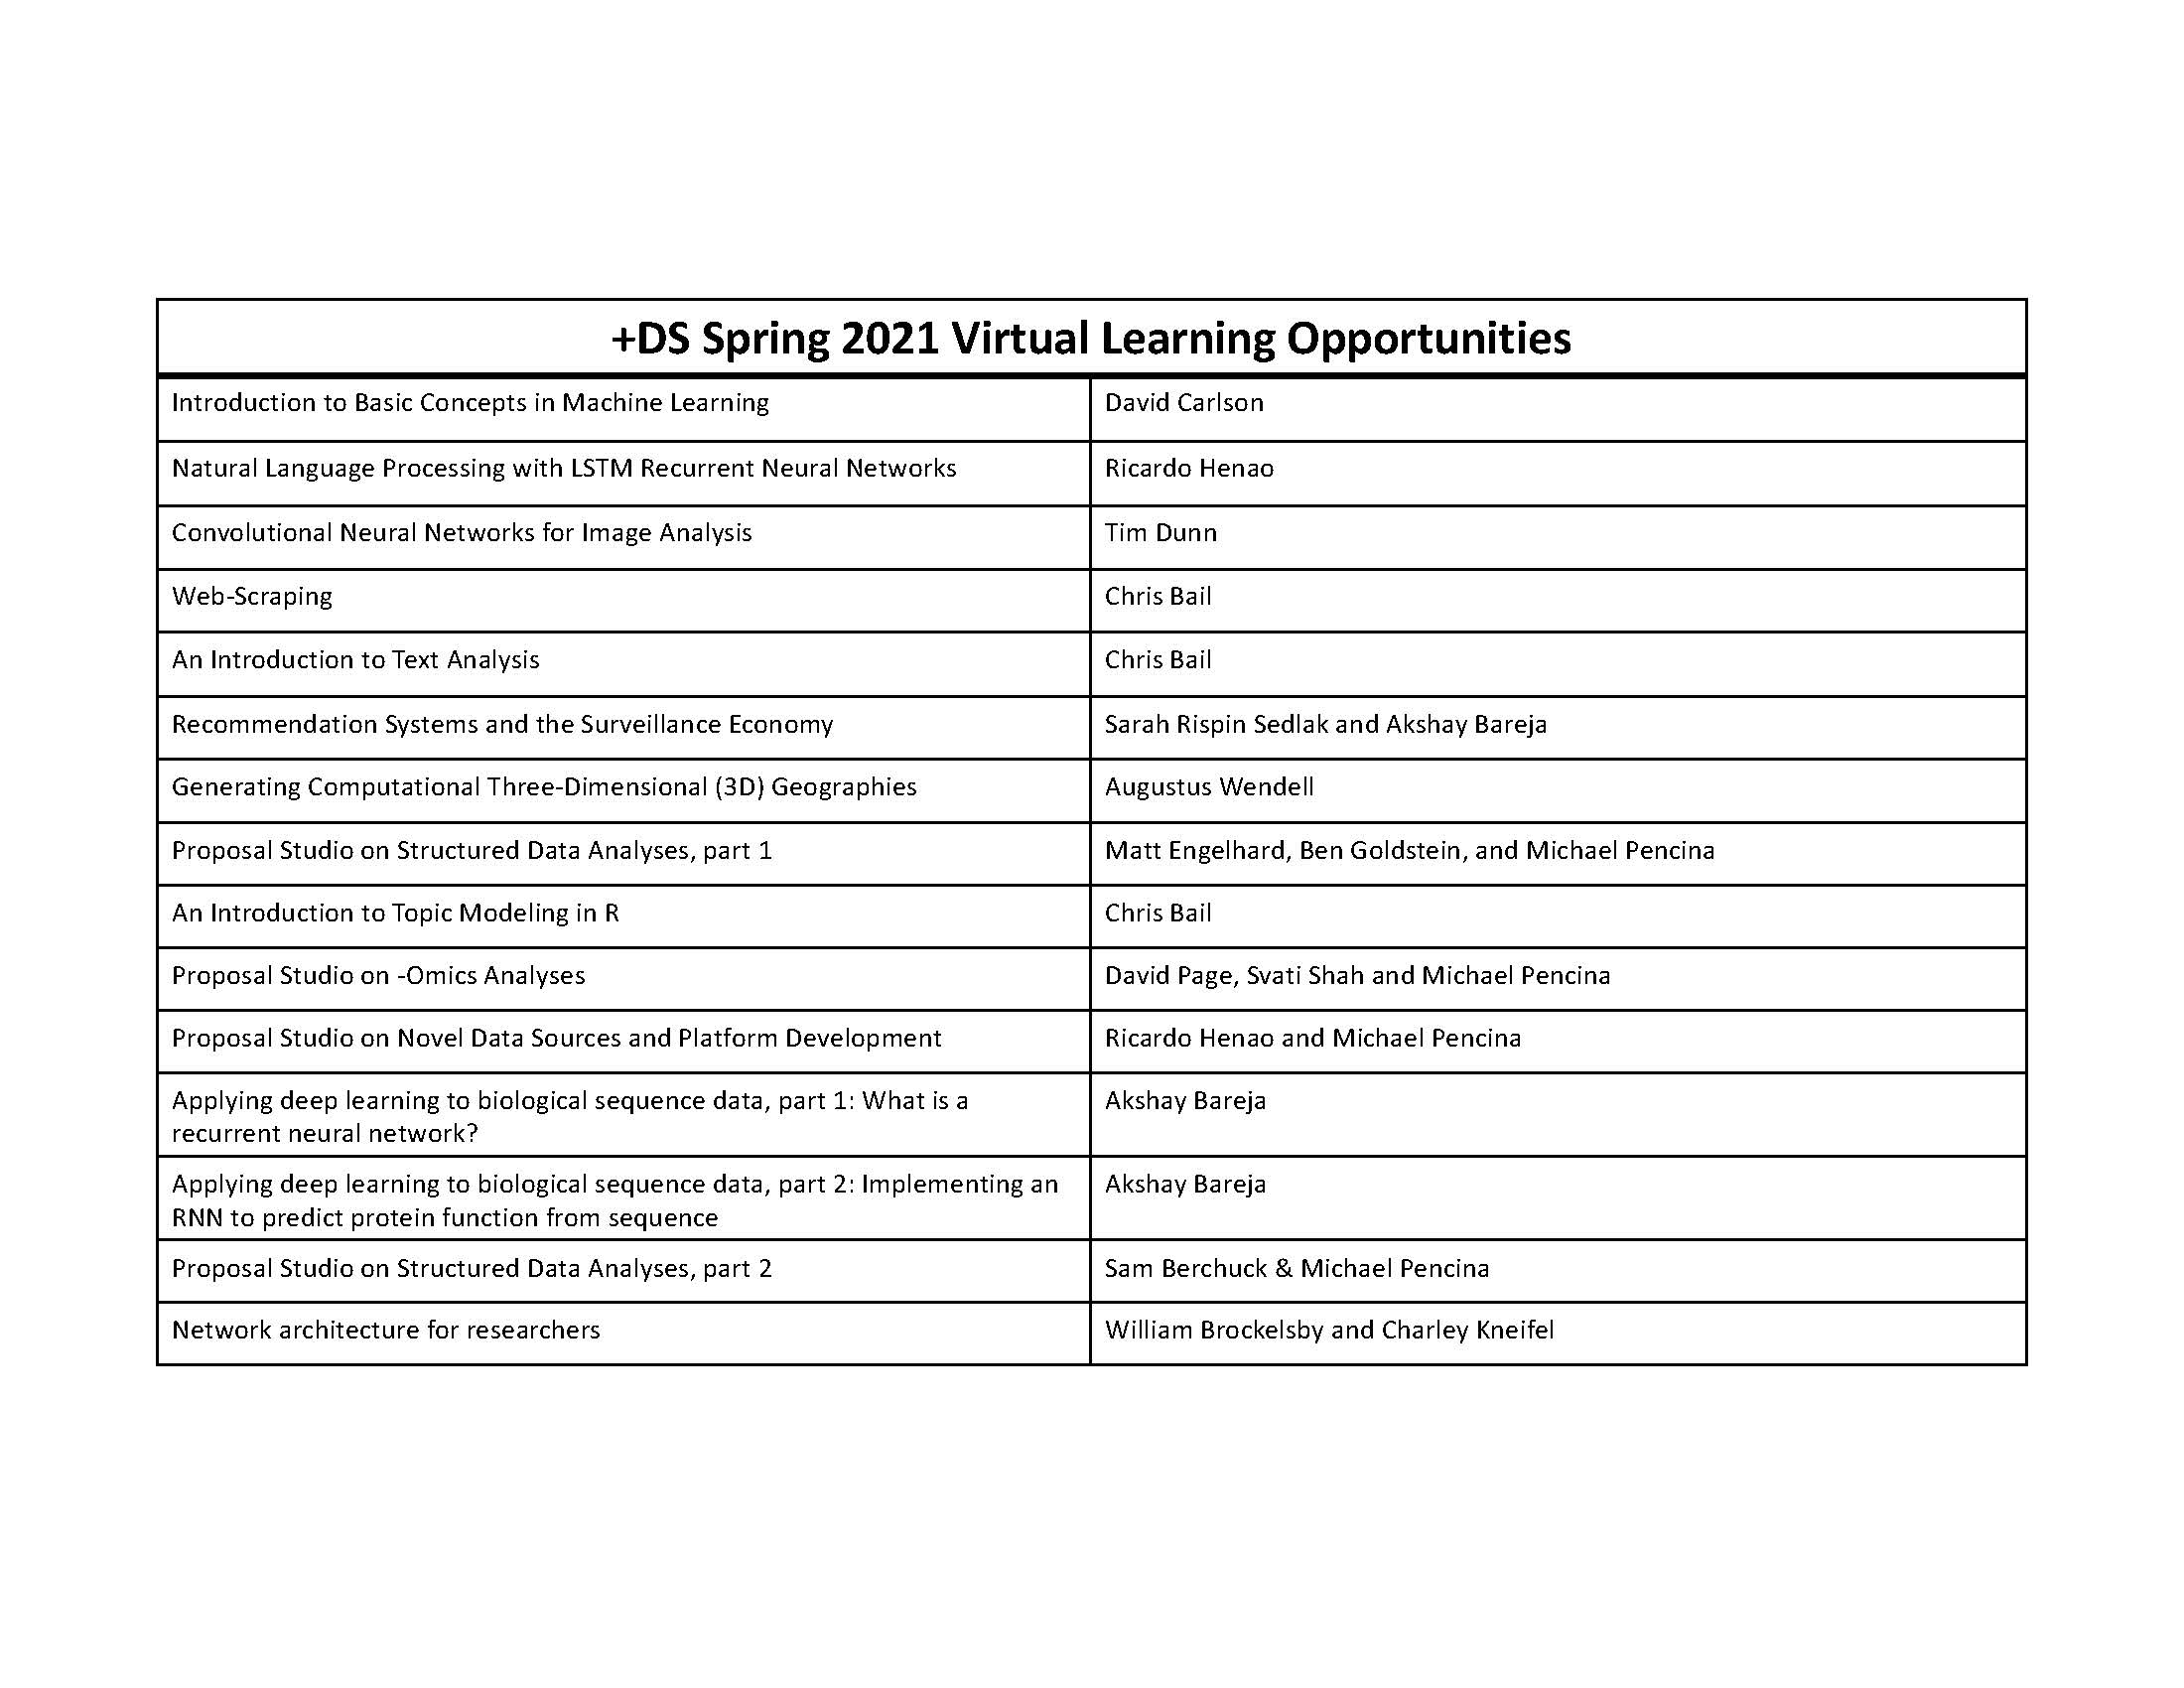 +DS Spring 2021 Virtual Learning Experiences